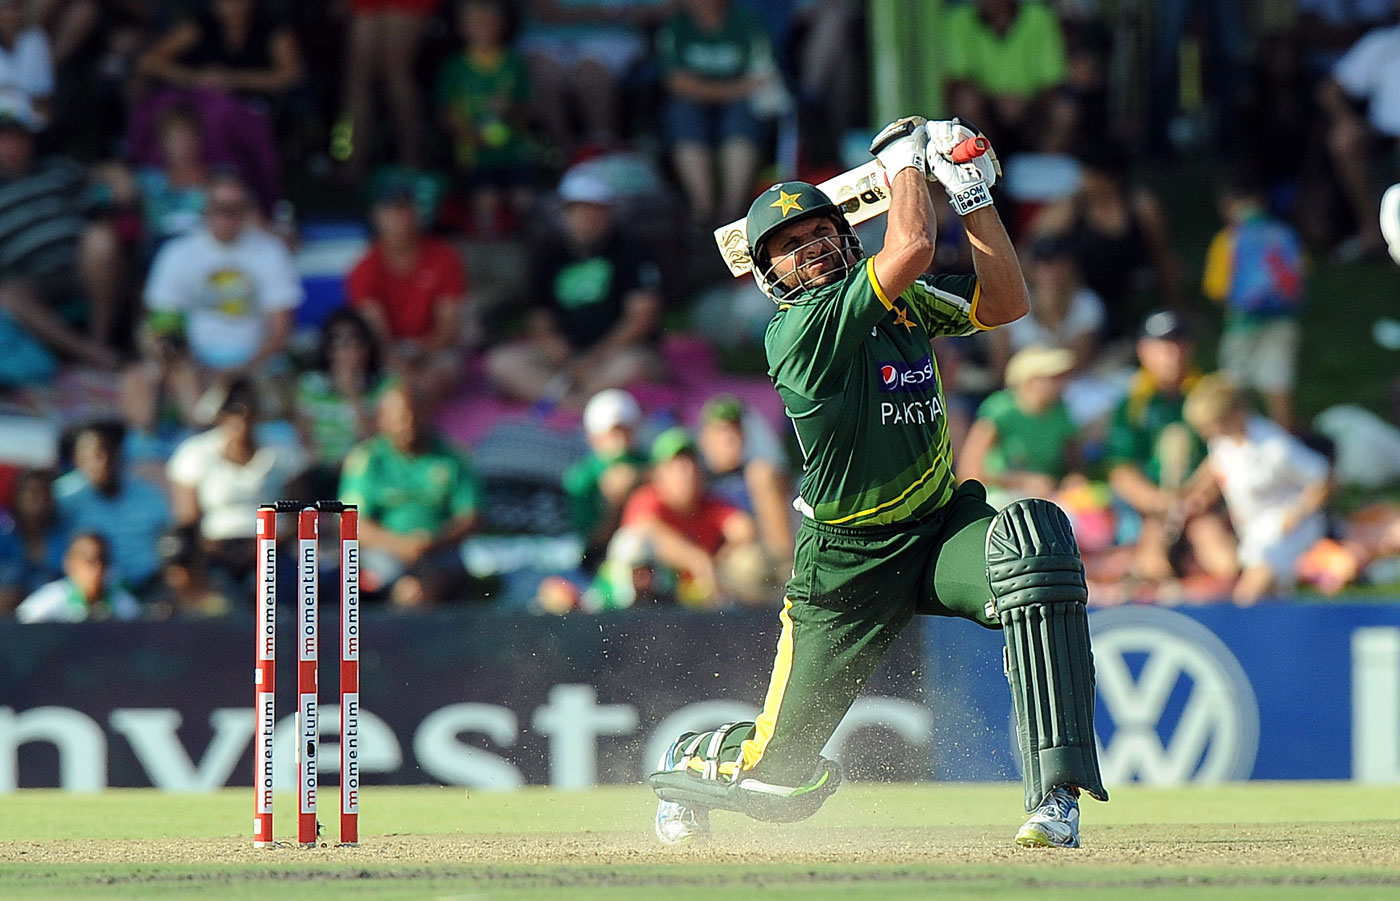 Shahid Afridi tries to clear the ground with a massive hit